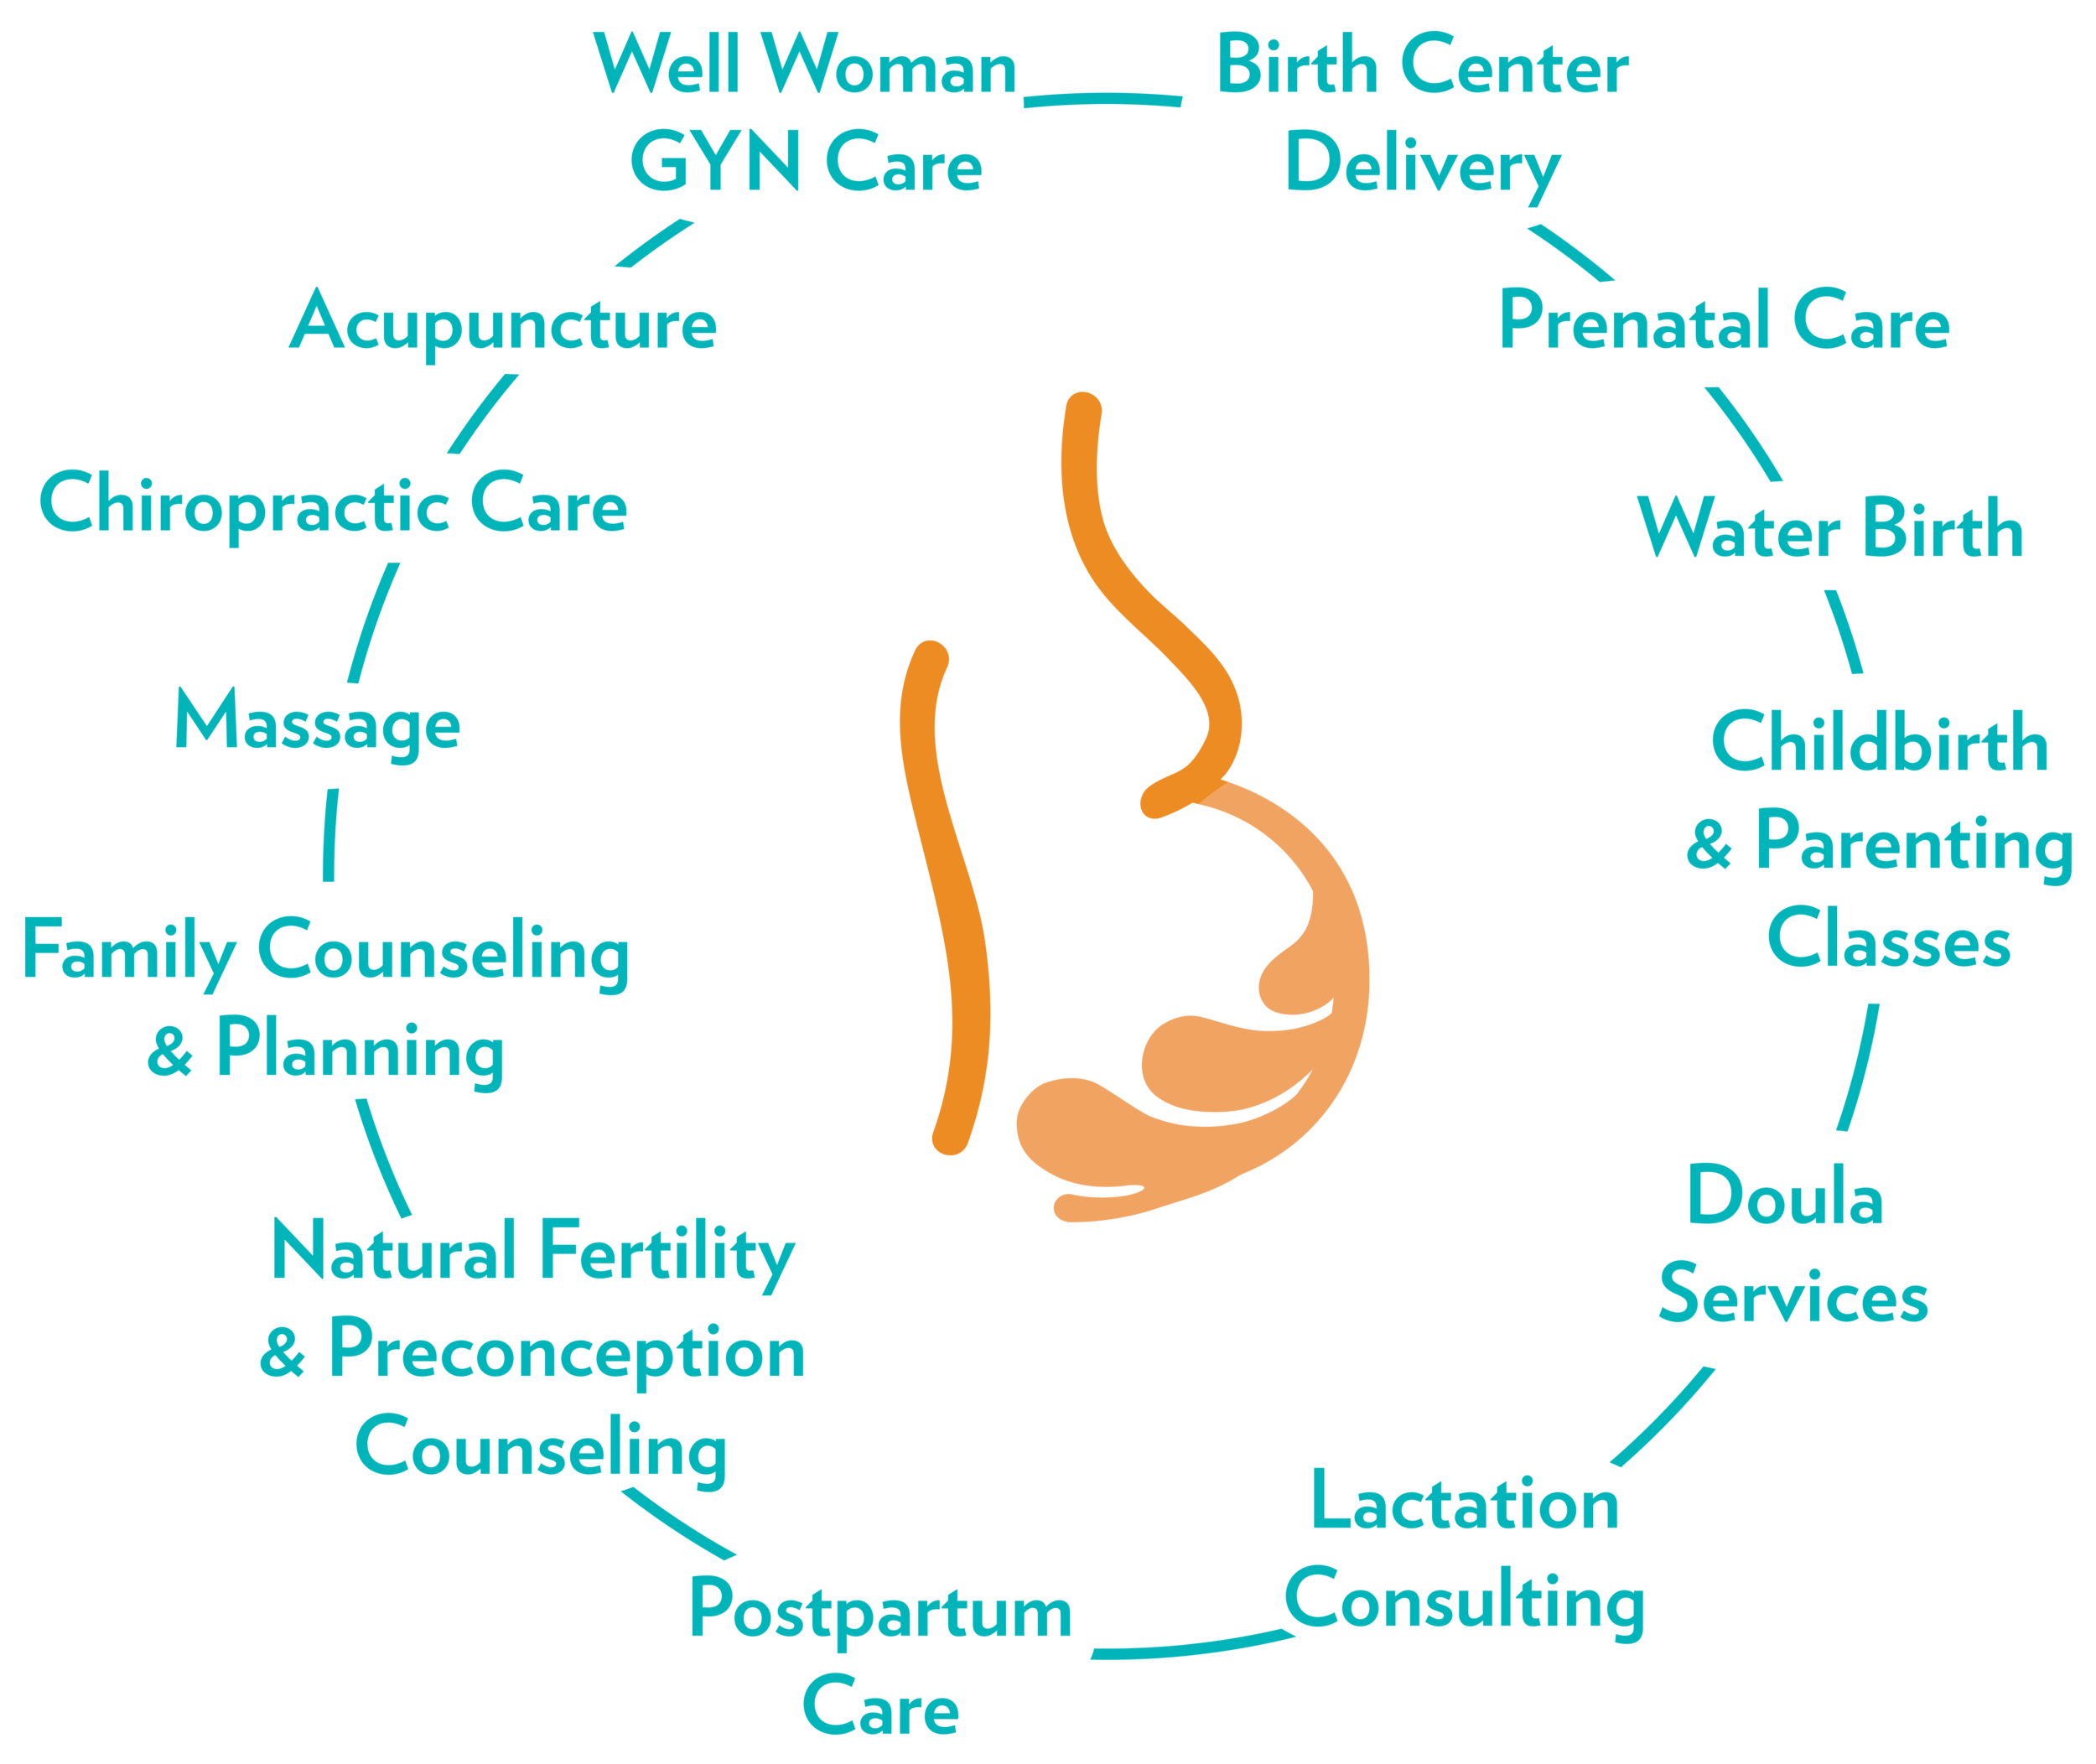 We provide prenatal care, post-partum care, doula services, birth center delivery, natural fertility and preconception counseling, lactation consulting, and well woman gyn care among other holistic services.